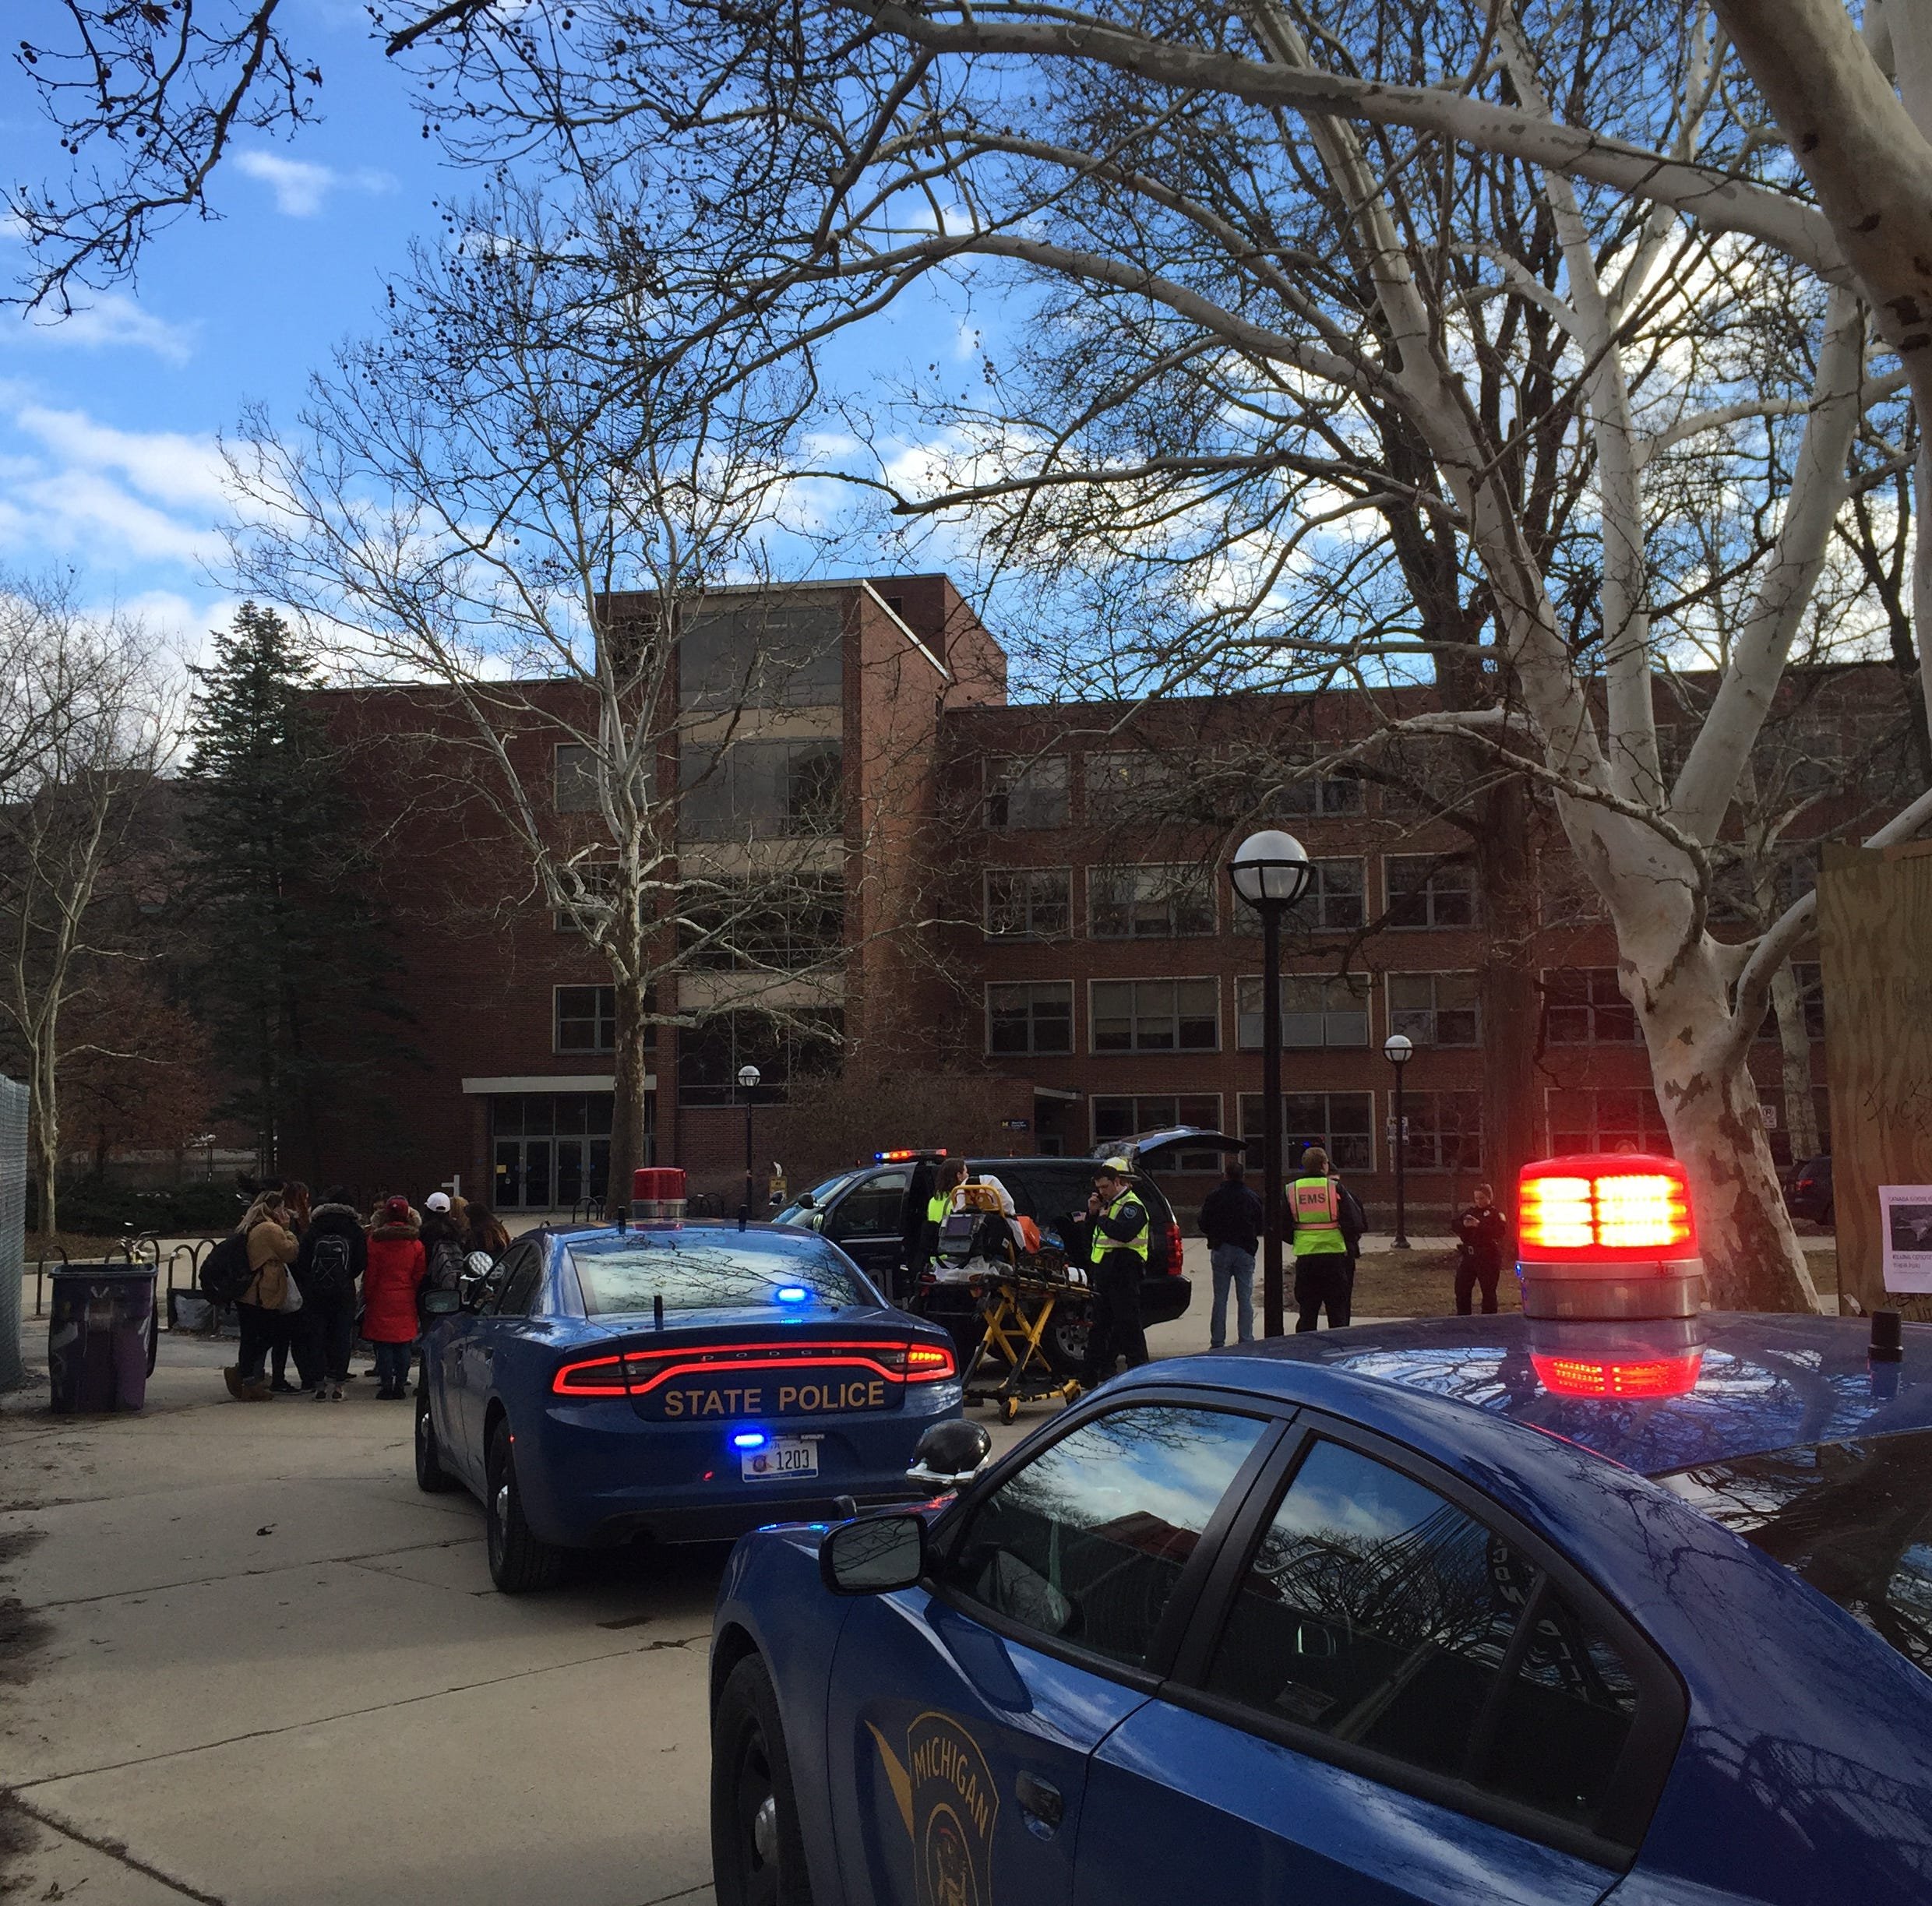 Active shooter reports on U-M campus appear unfounded, sheriff's office says